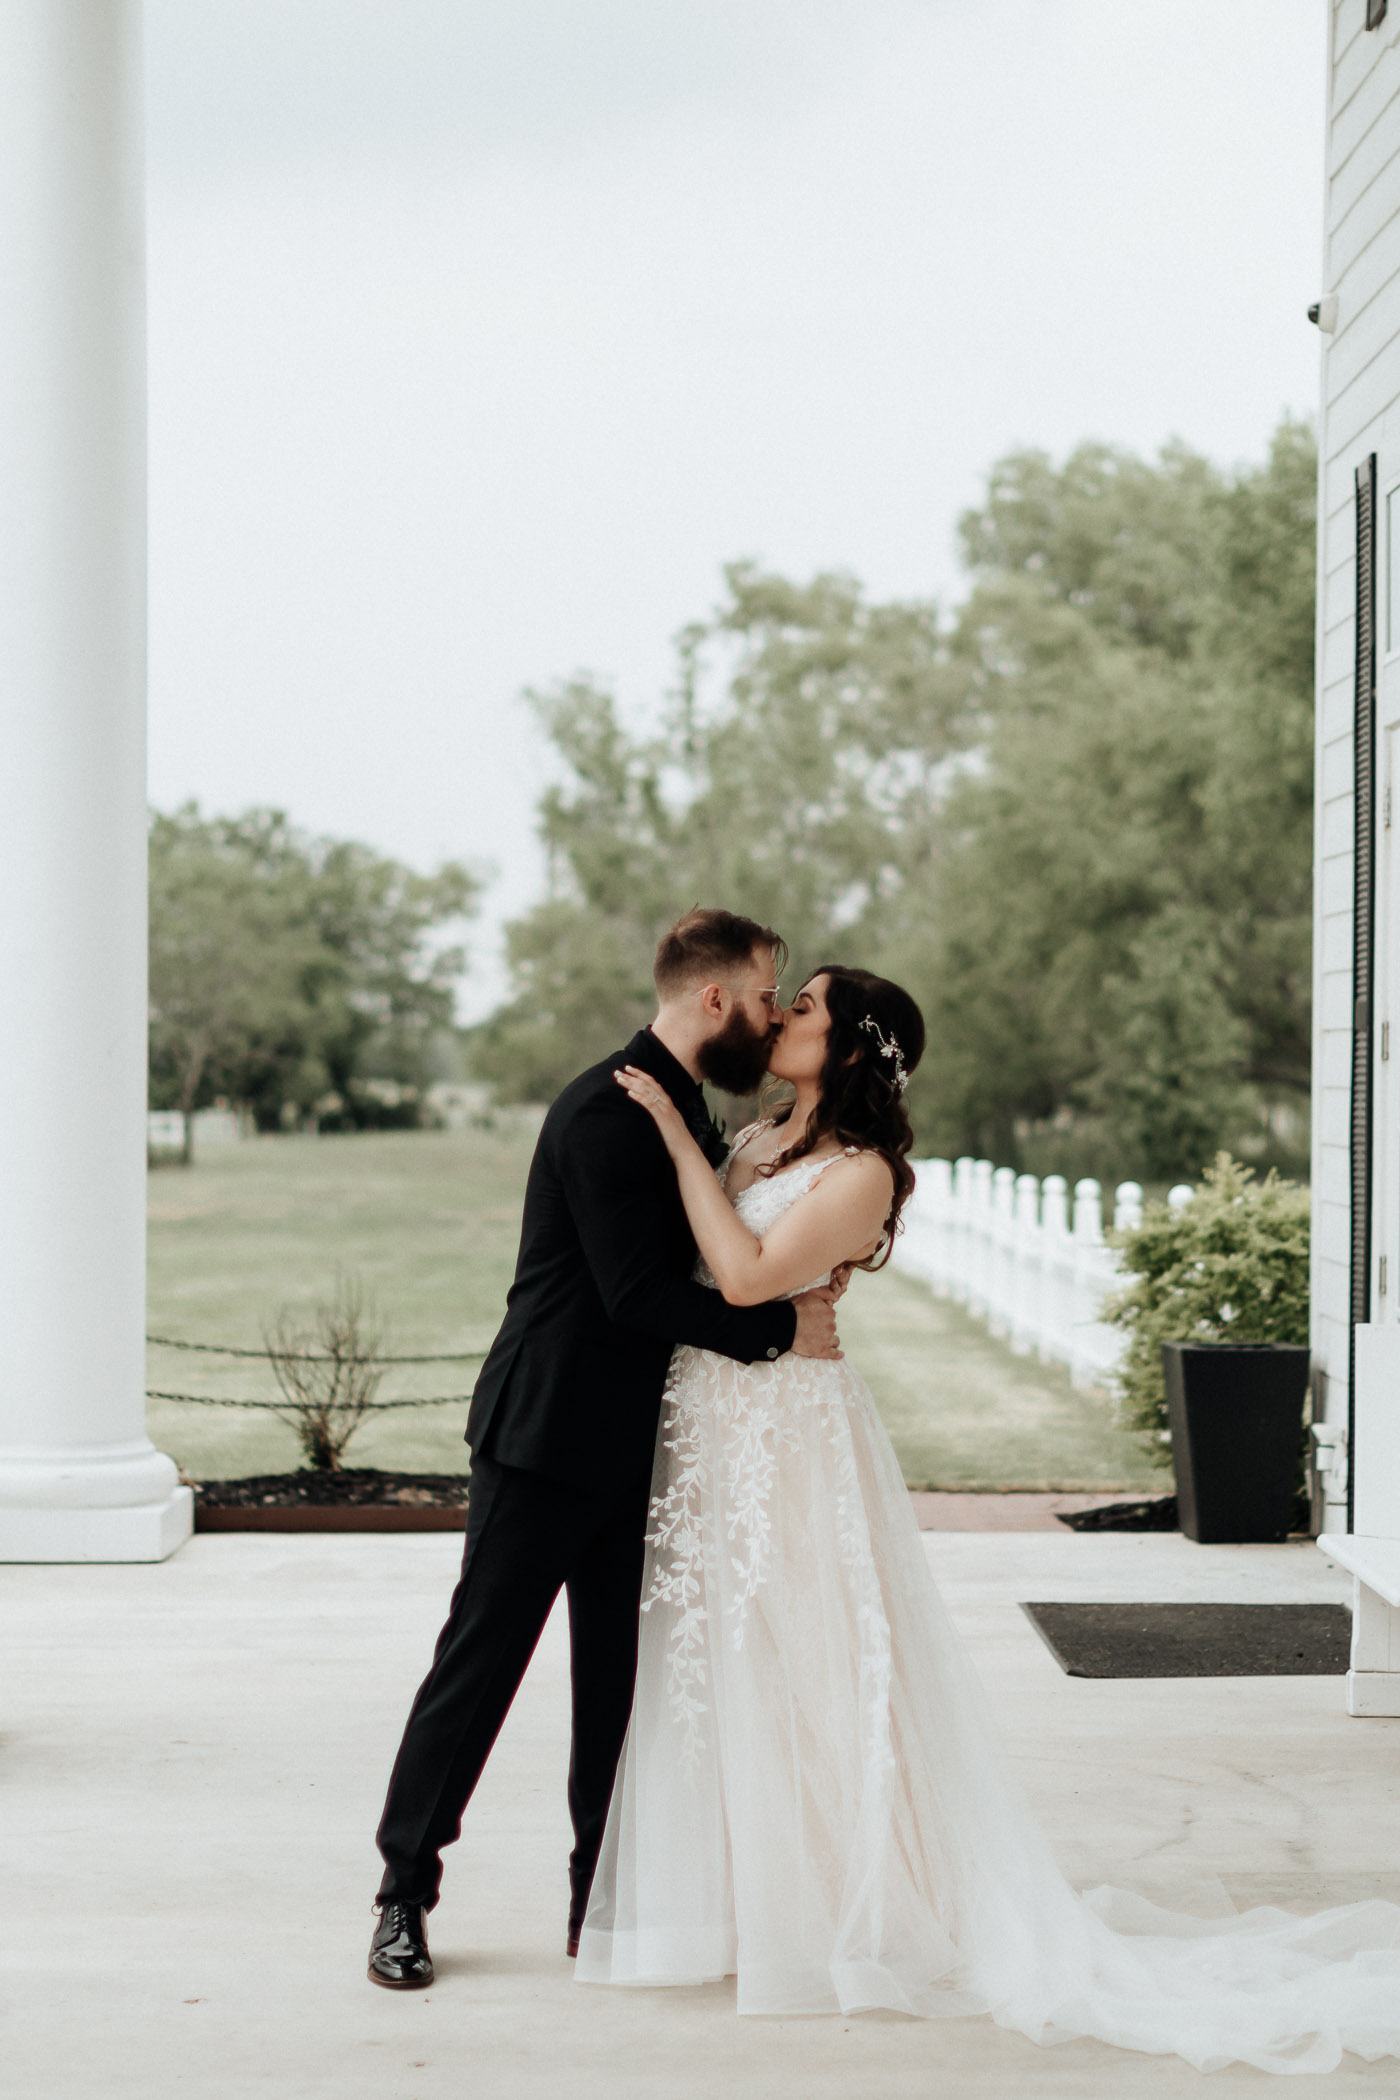 Bride and groom taking portraits after wedding ceremony in DFW